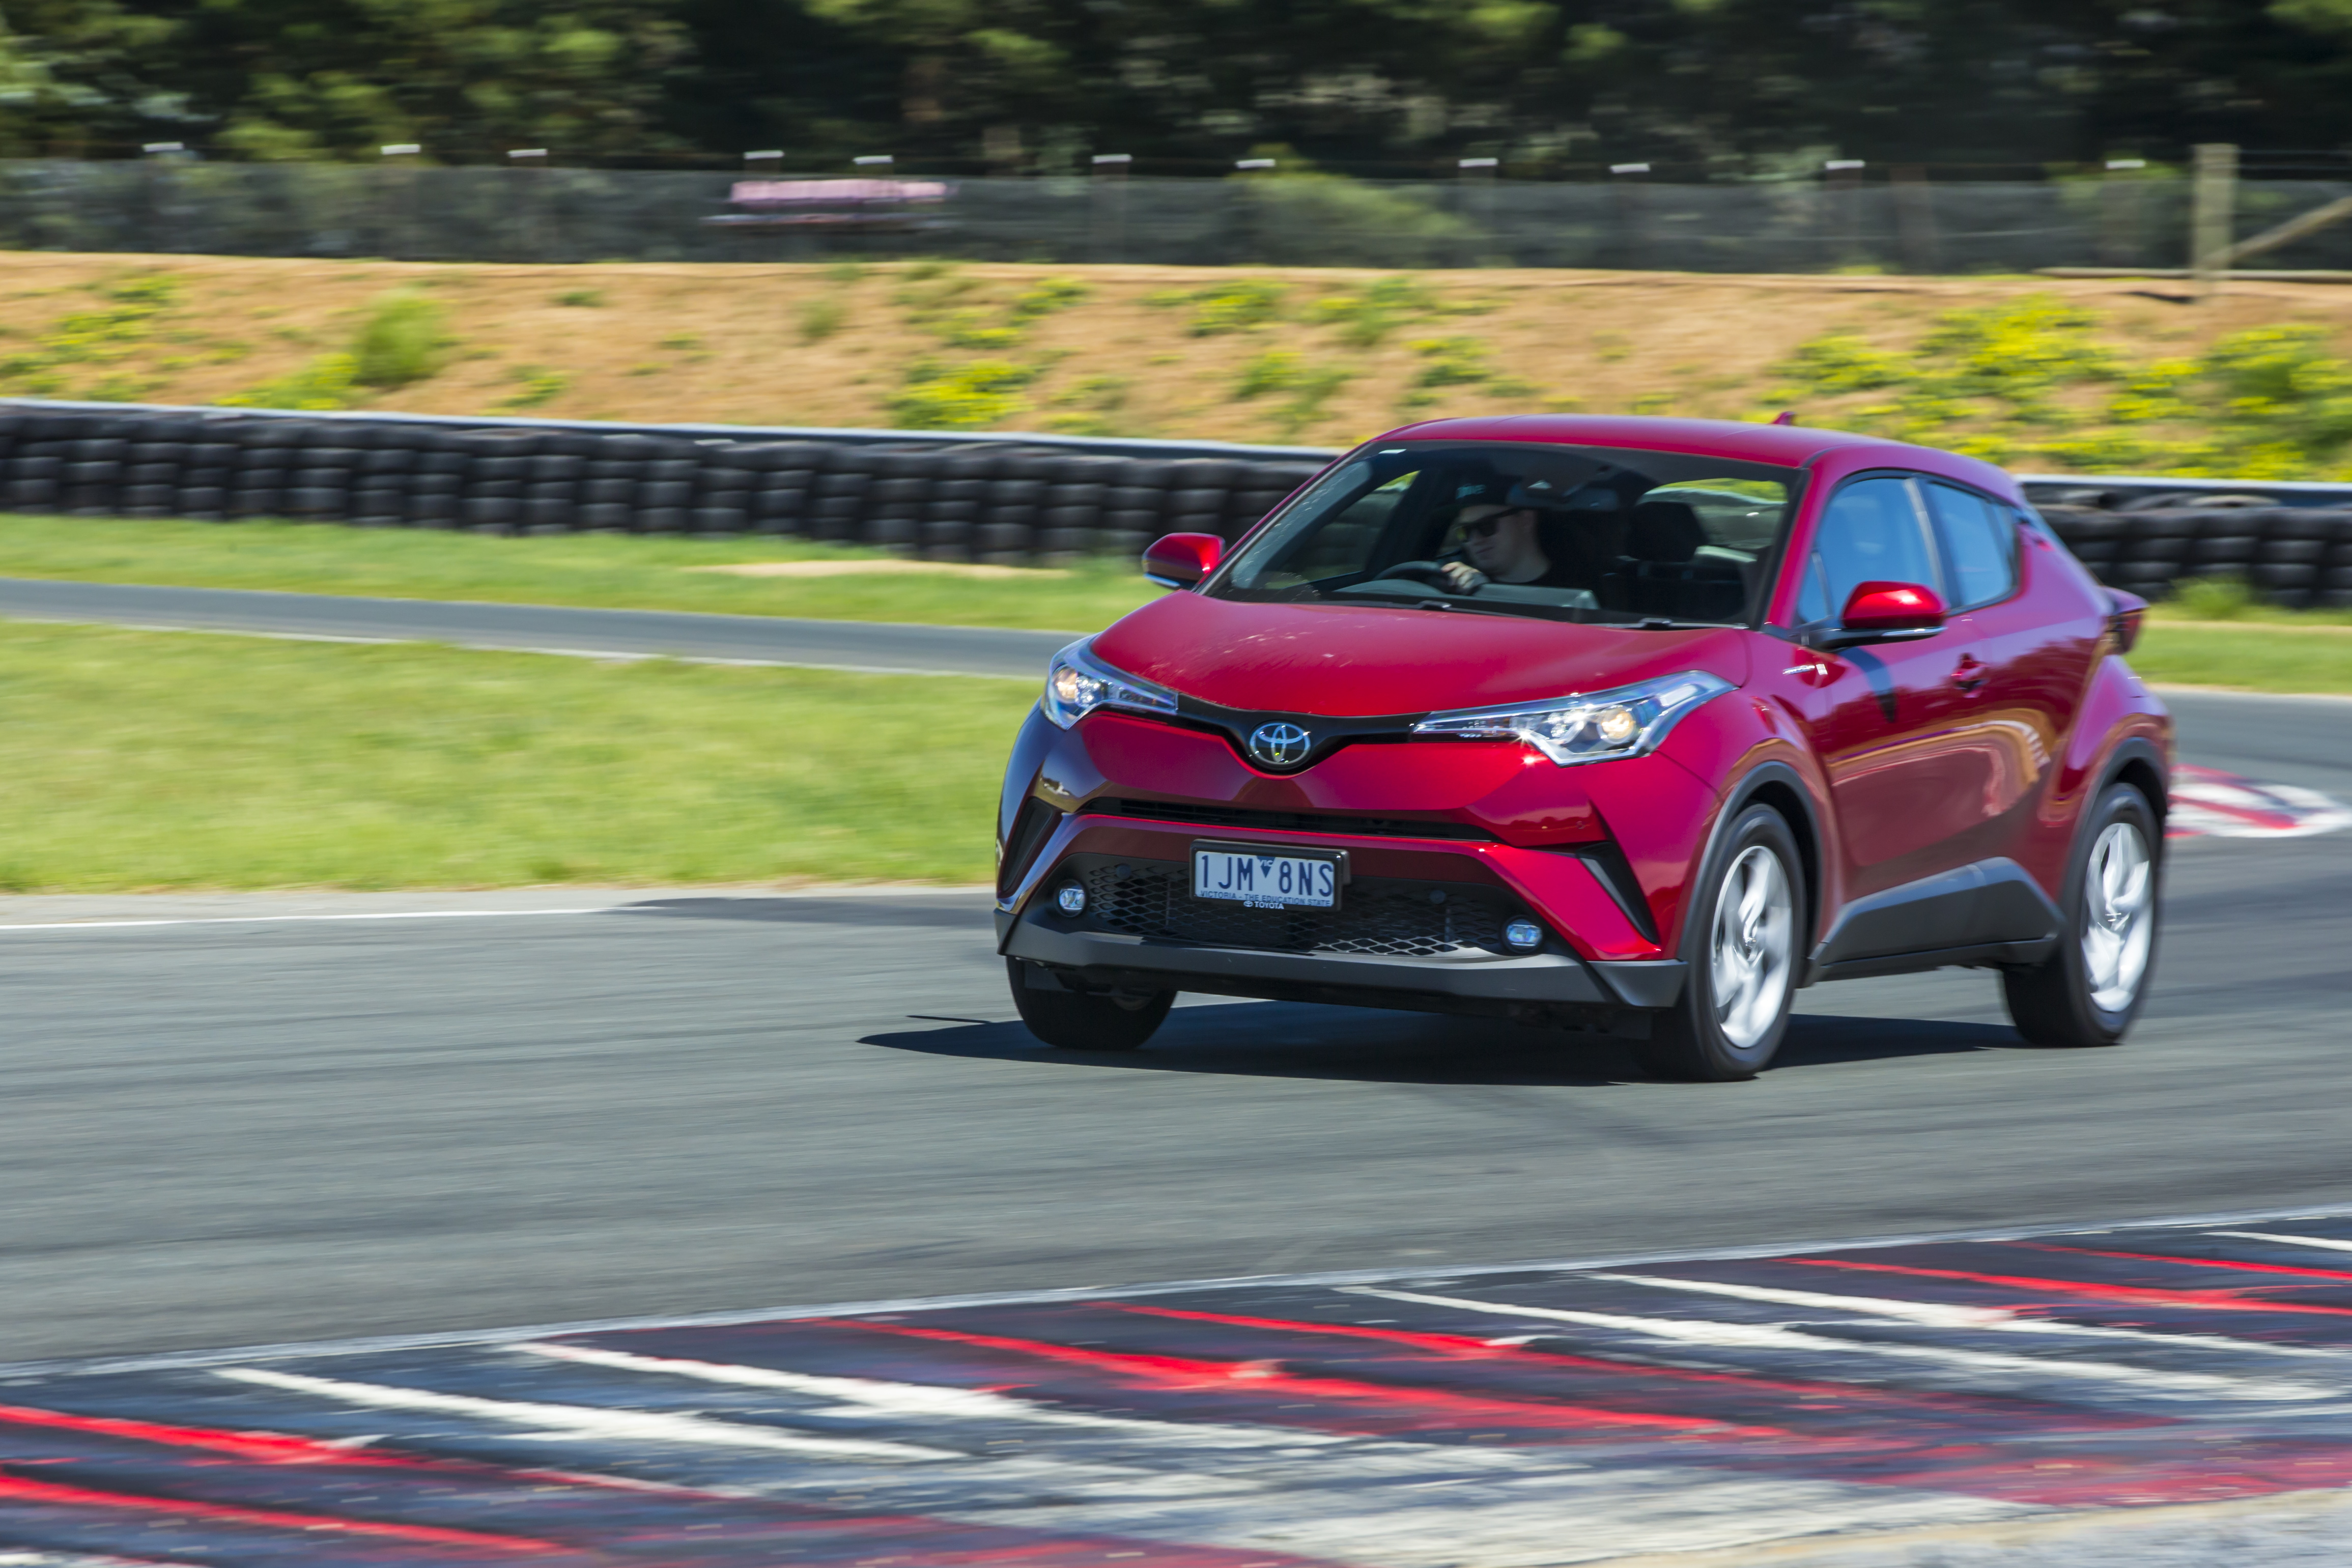 2017 Drive Car of the Year finalist: Toyota C-HR.